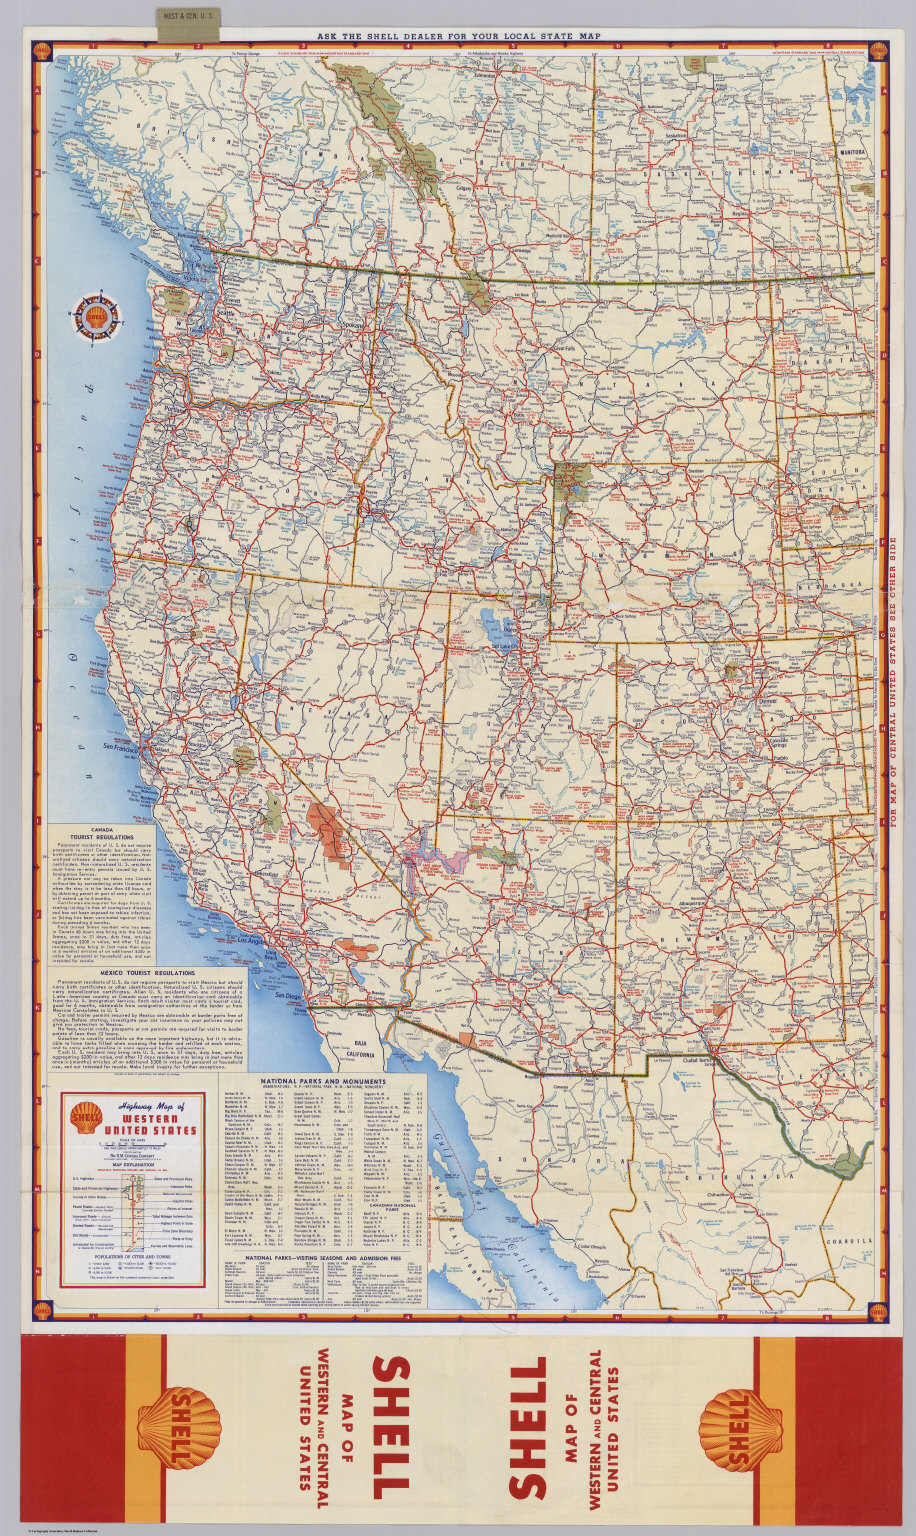 S Highway Map of Western United States. - David Rumsey ... on map of west central us states, map of california and bordering states, map of usa west region, western states map north america, map western usa states, map of western coast of north america,